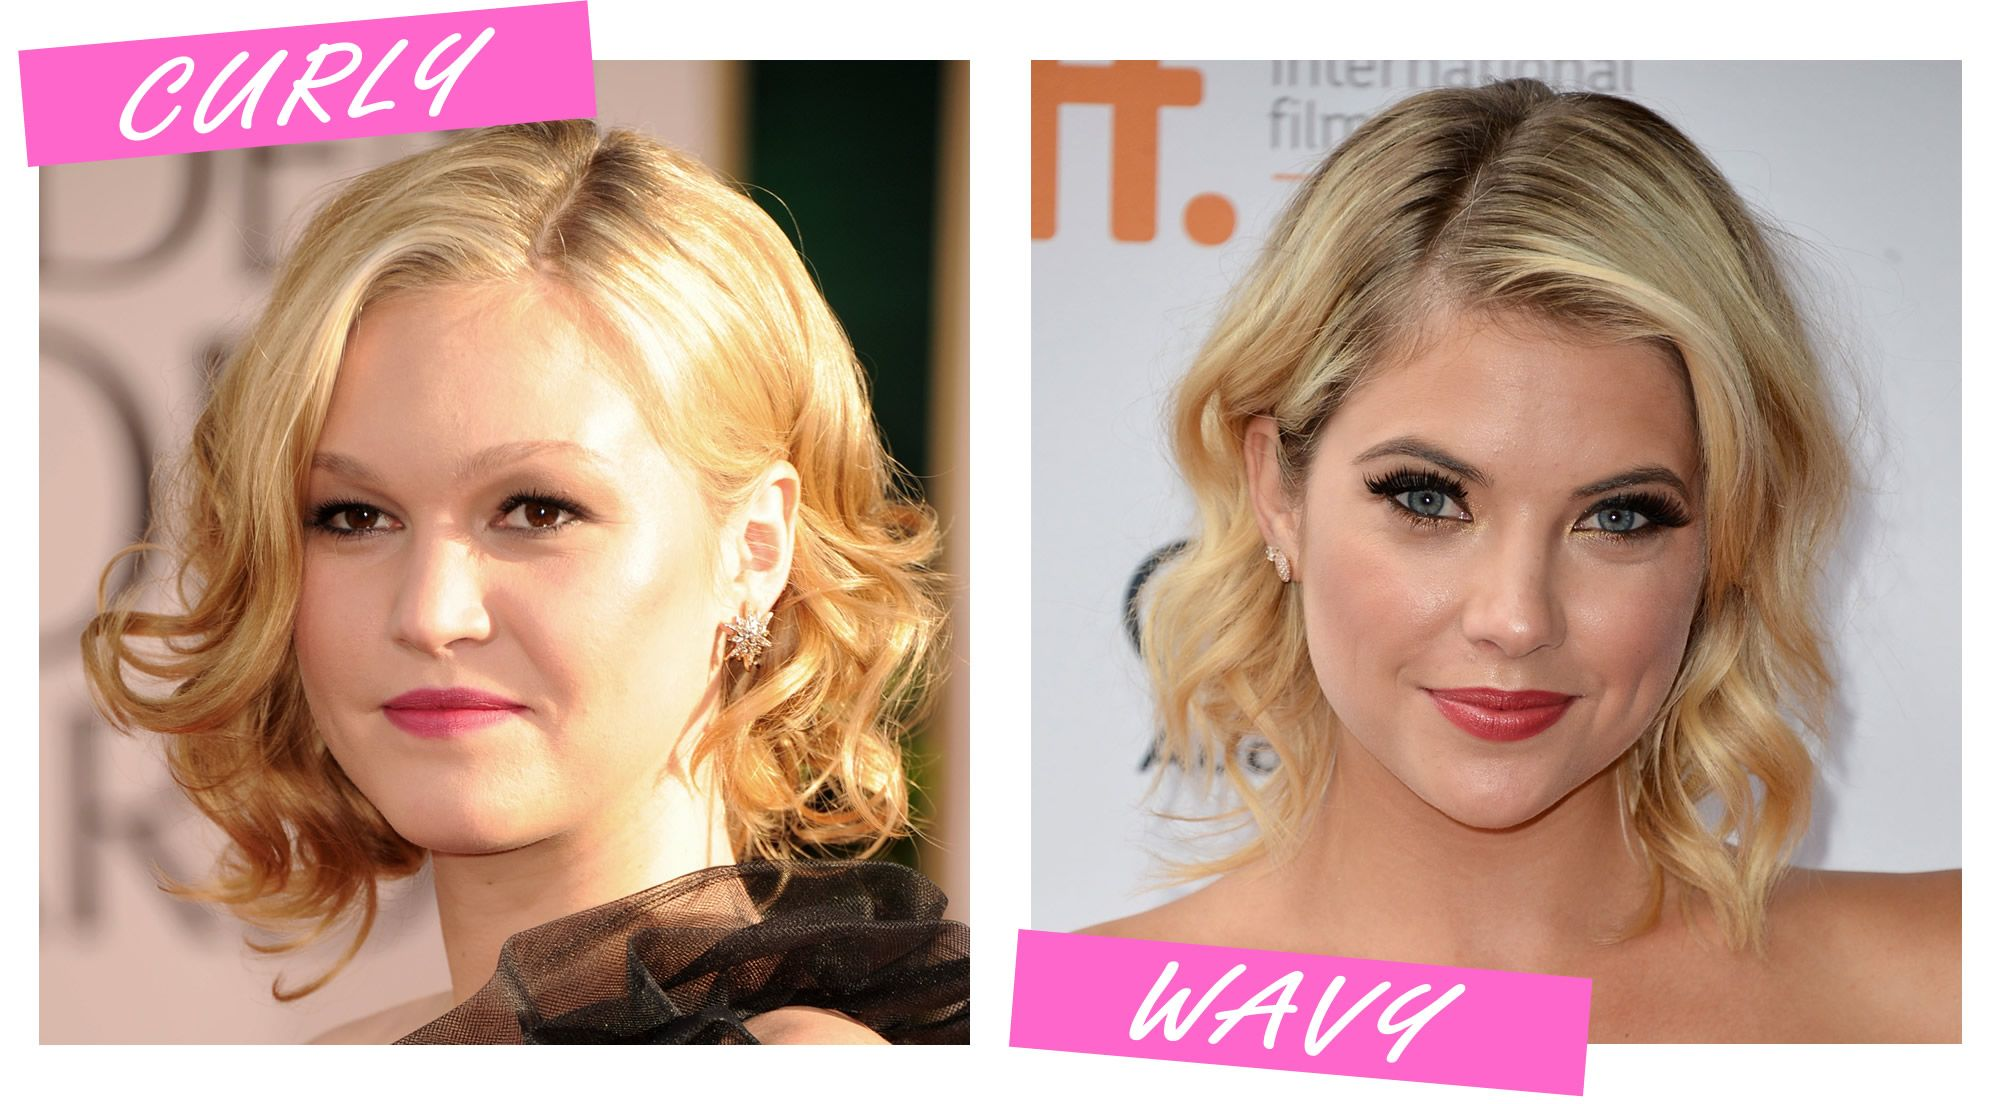 Curling Short Hair With A Curling Iron Hairstyles In 2018